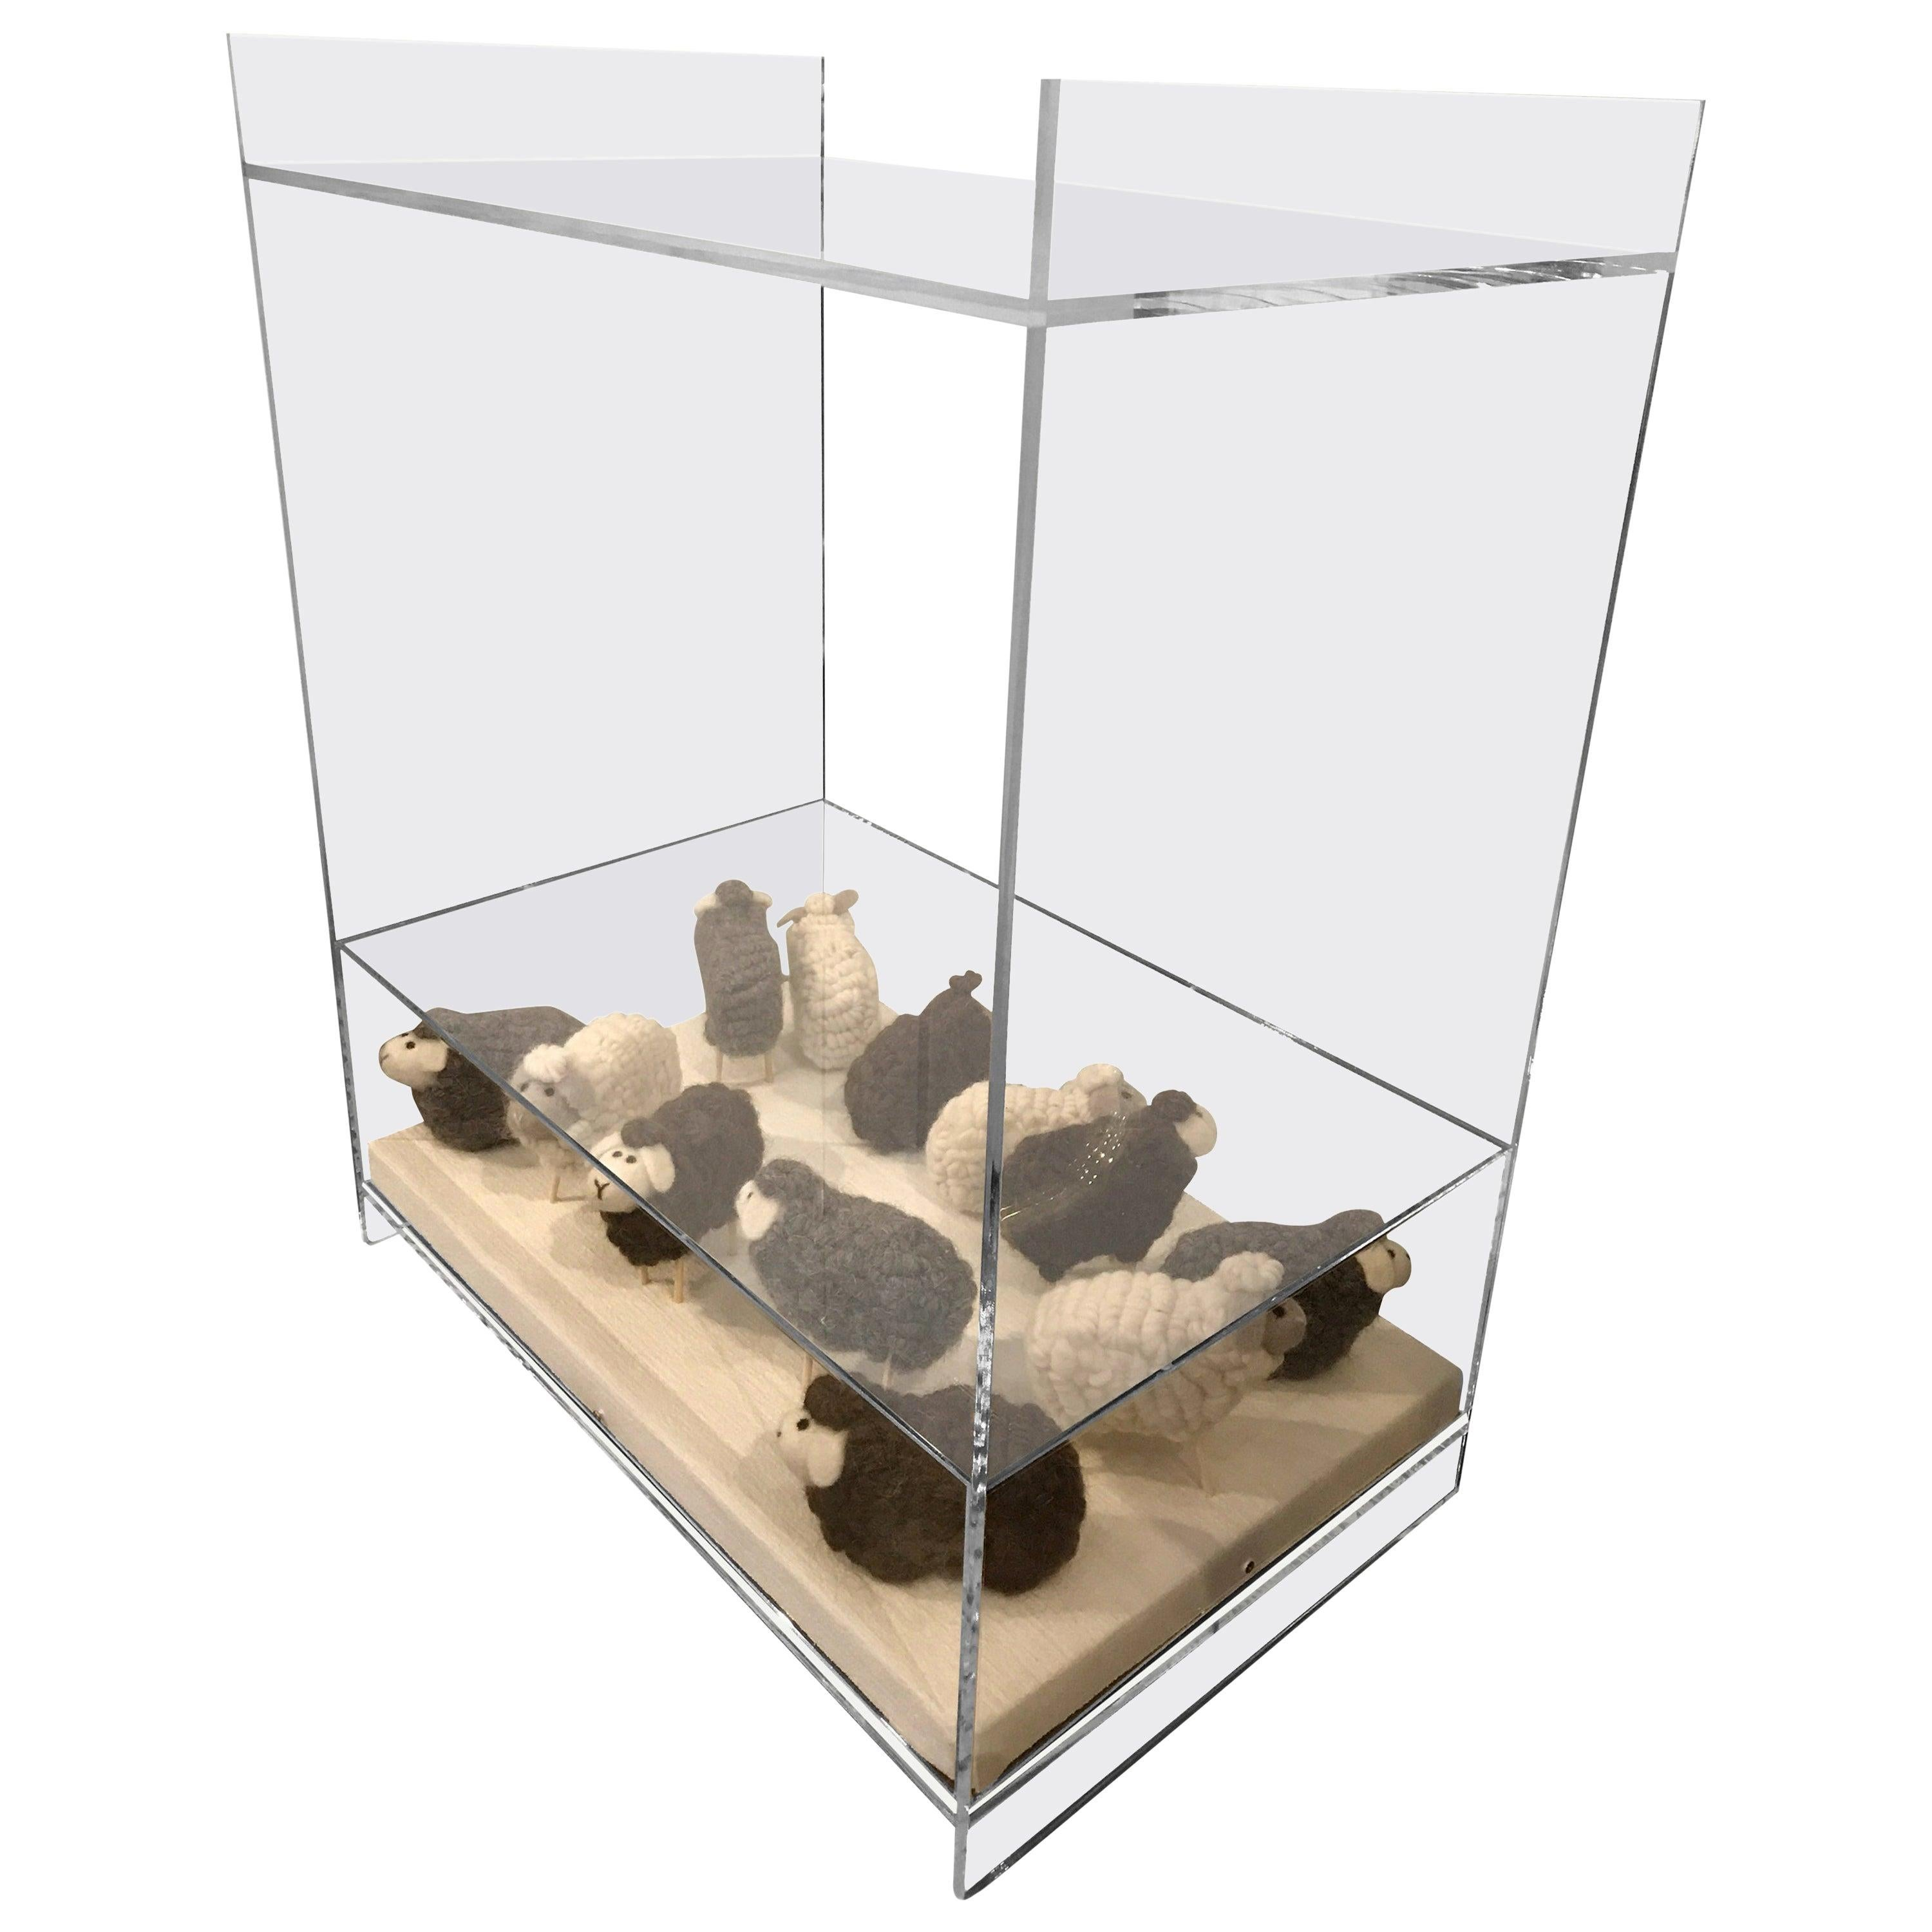 Lucite Object d'art Wooly Sheep Bedside or Side Table by AMK for Patricia Kagan